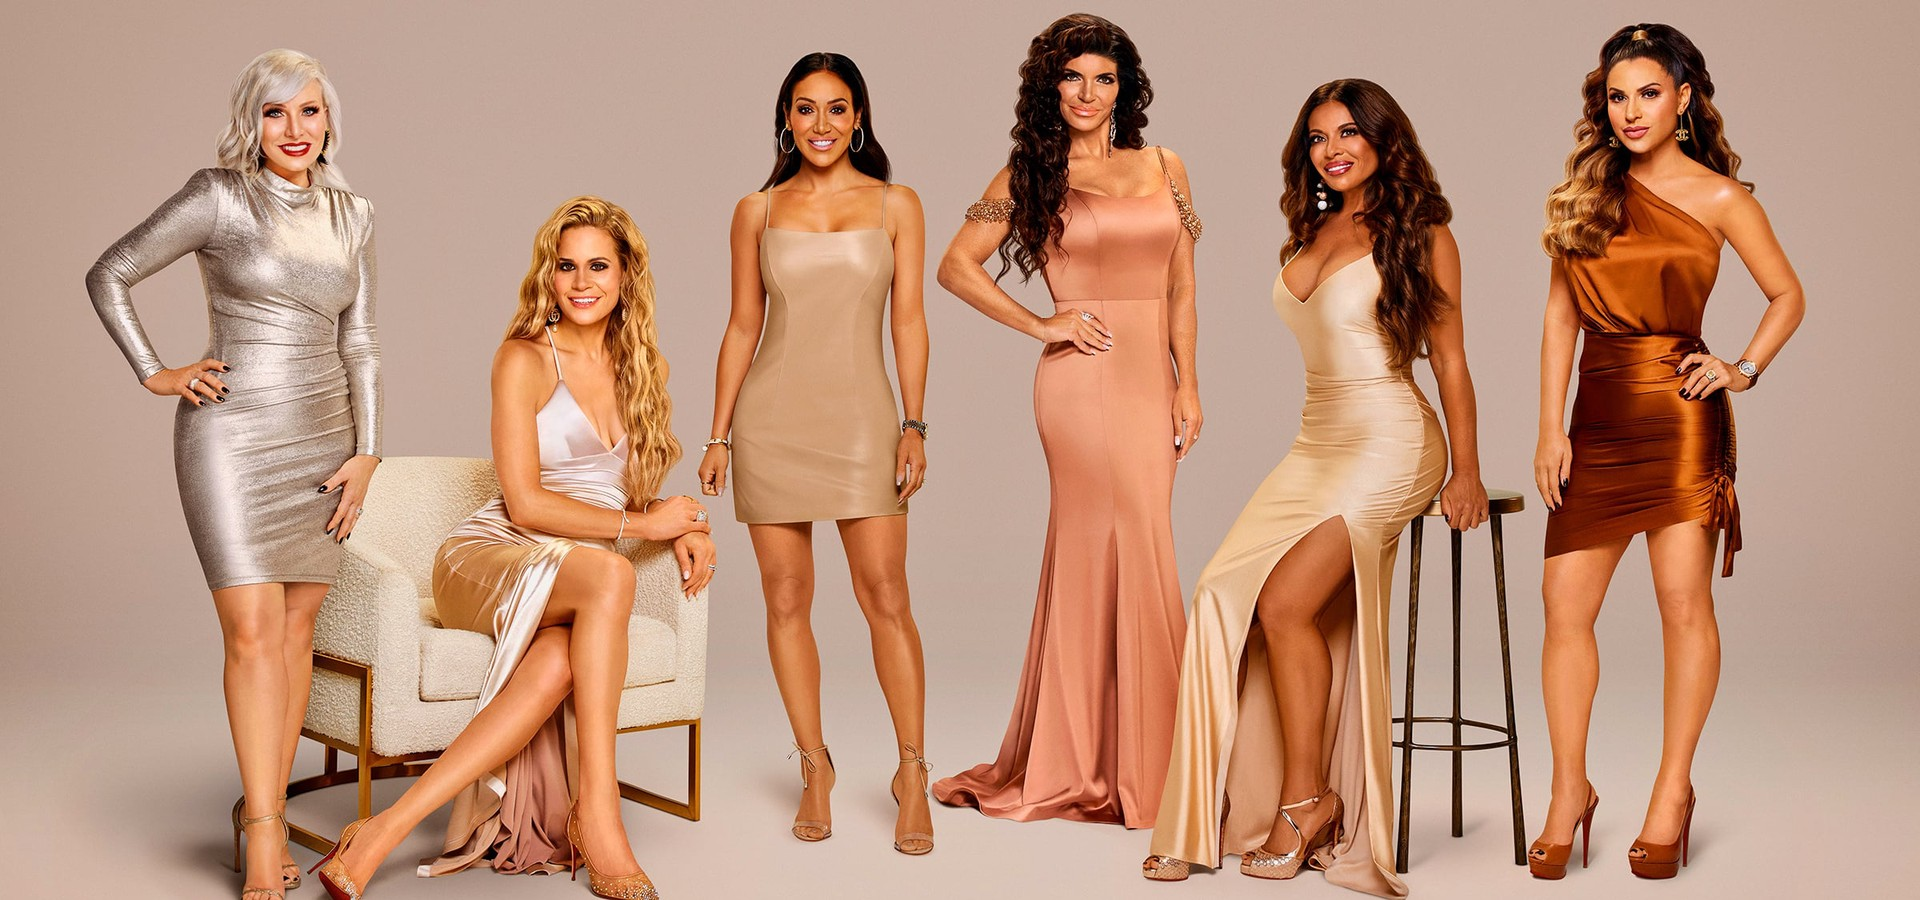 The Real Housewives of New Jersey